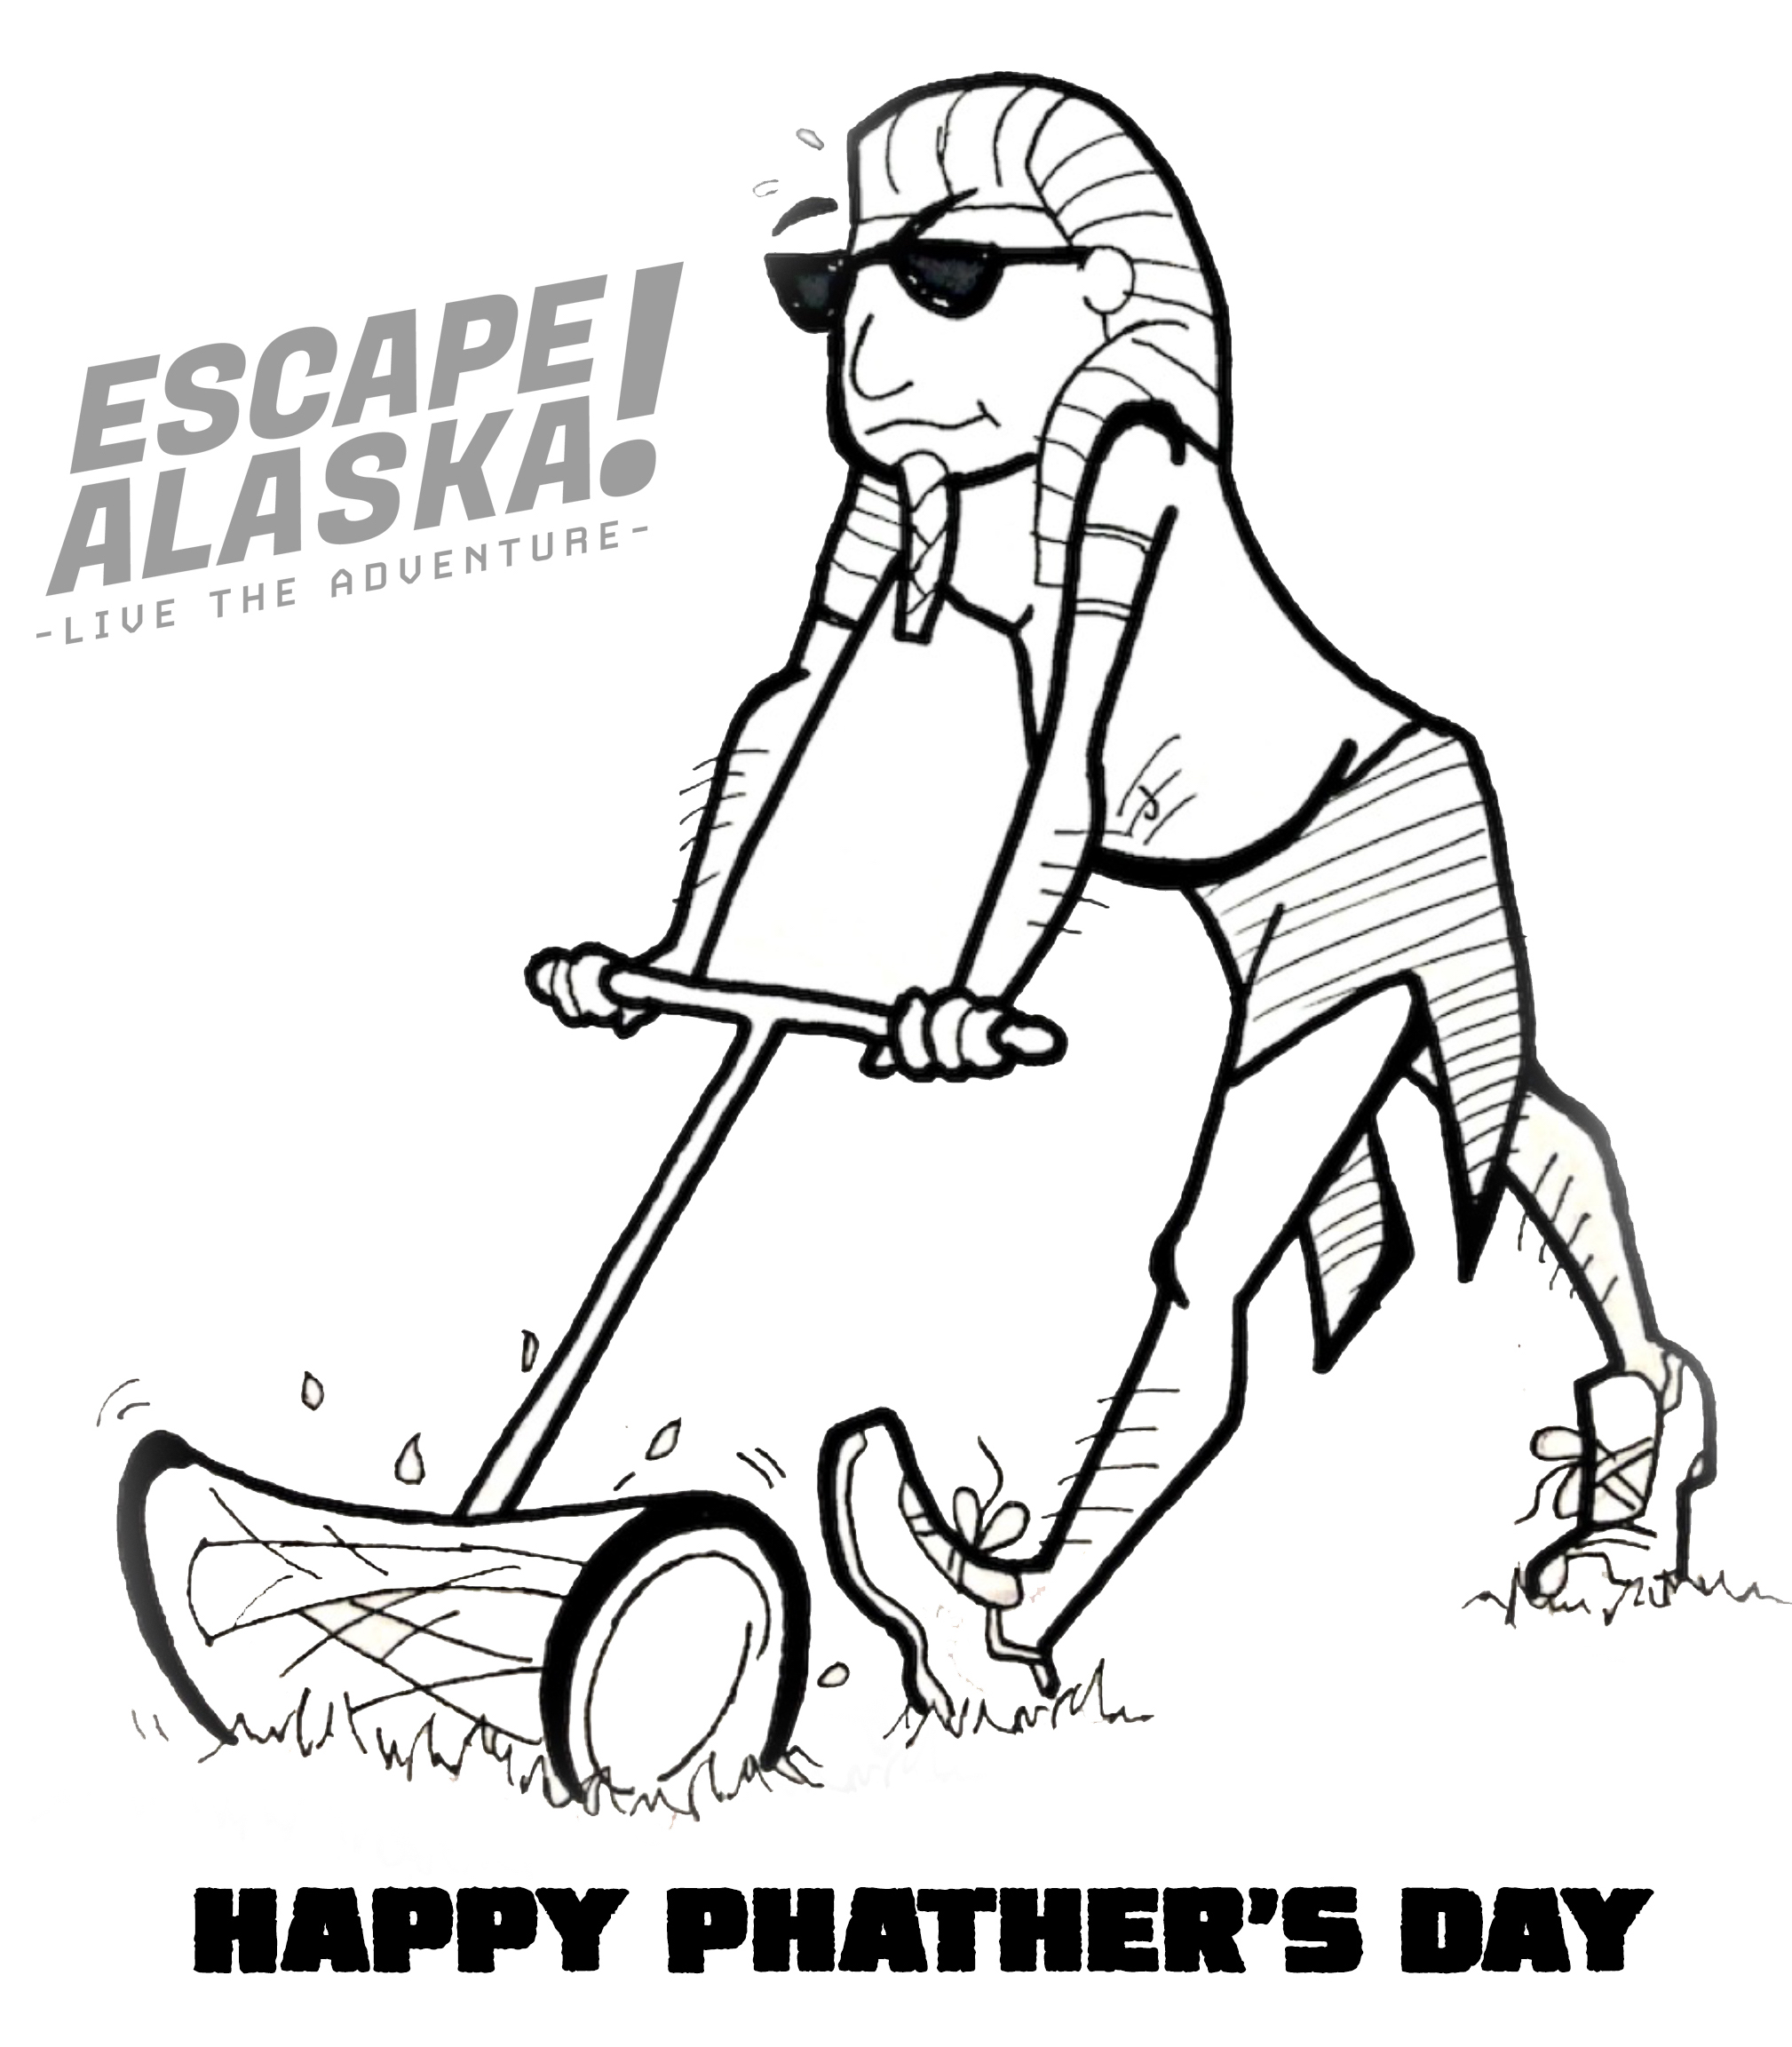 This Father's Day give Dad the gift of an adventure at ESCAPE! Alaska.